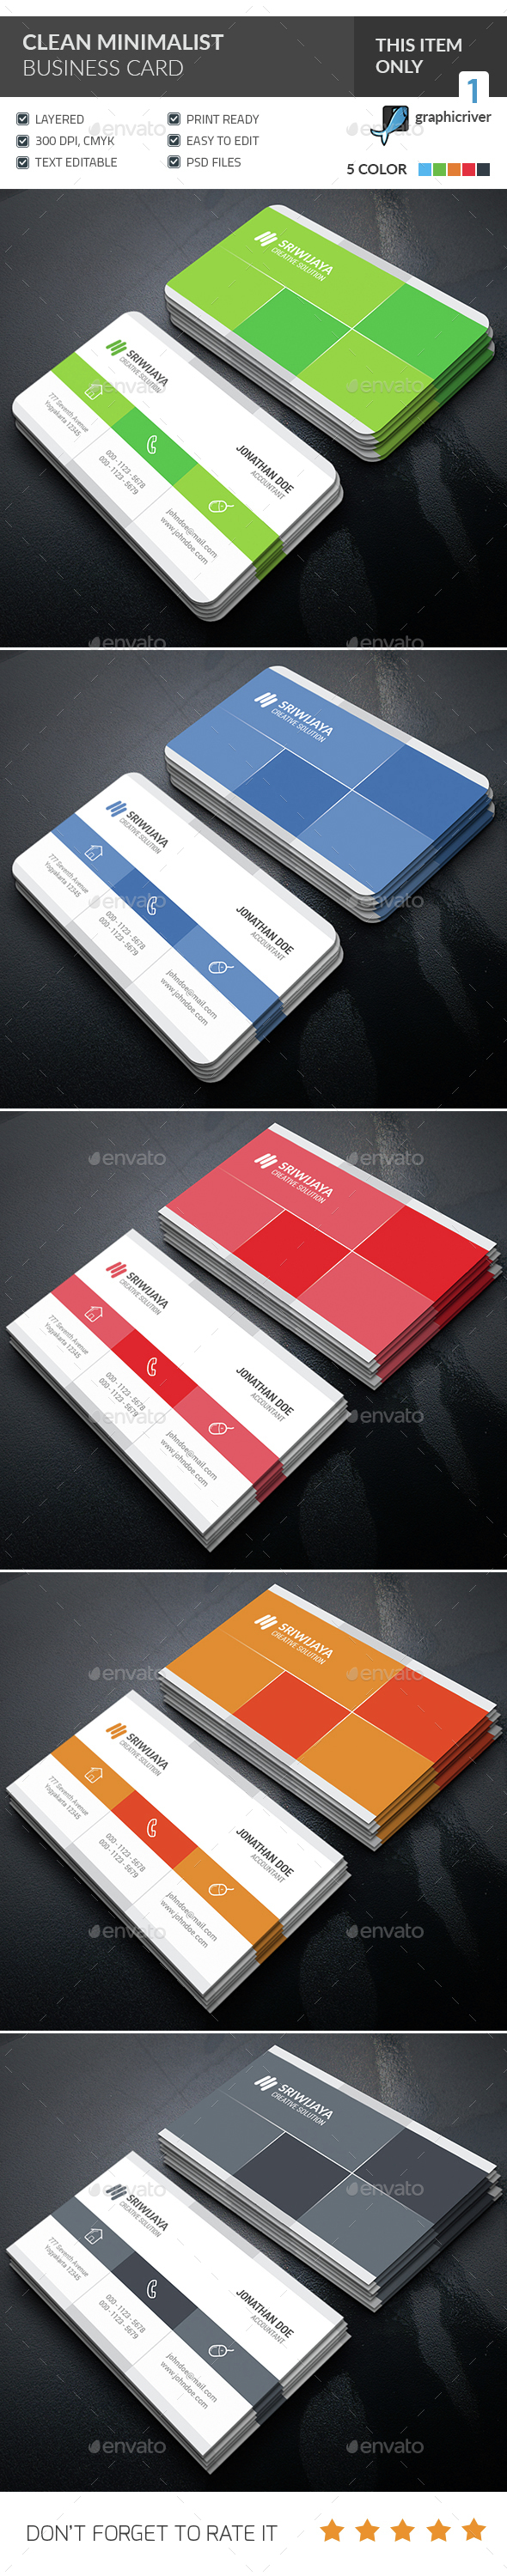 Clean Minimalist Business Card  - Corporate Business Cards